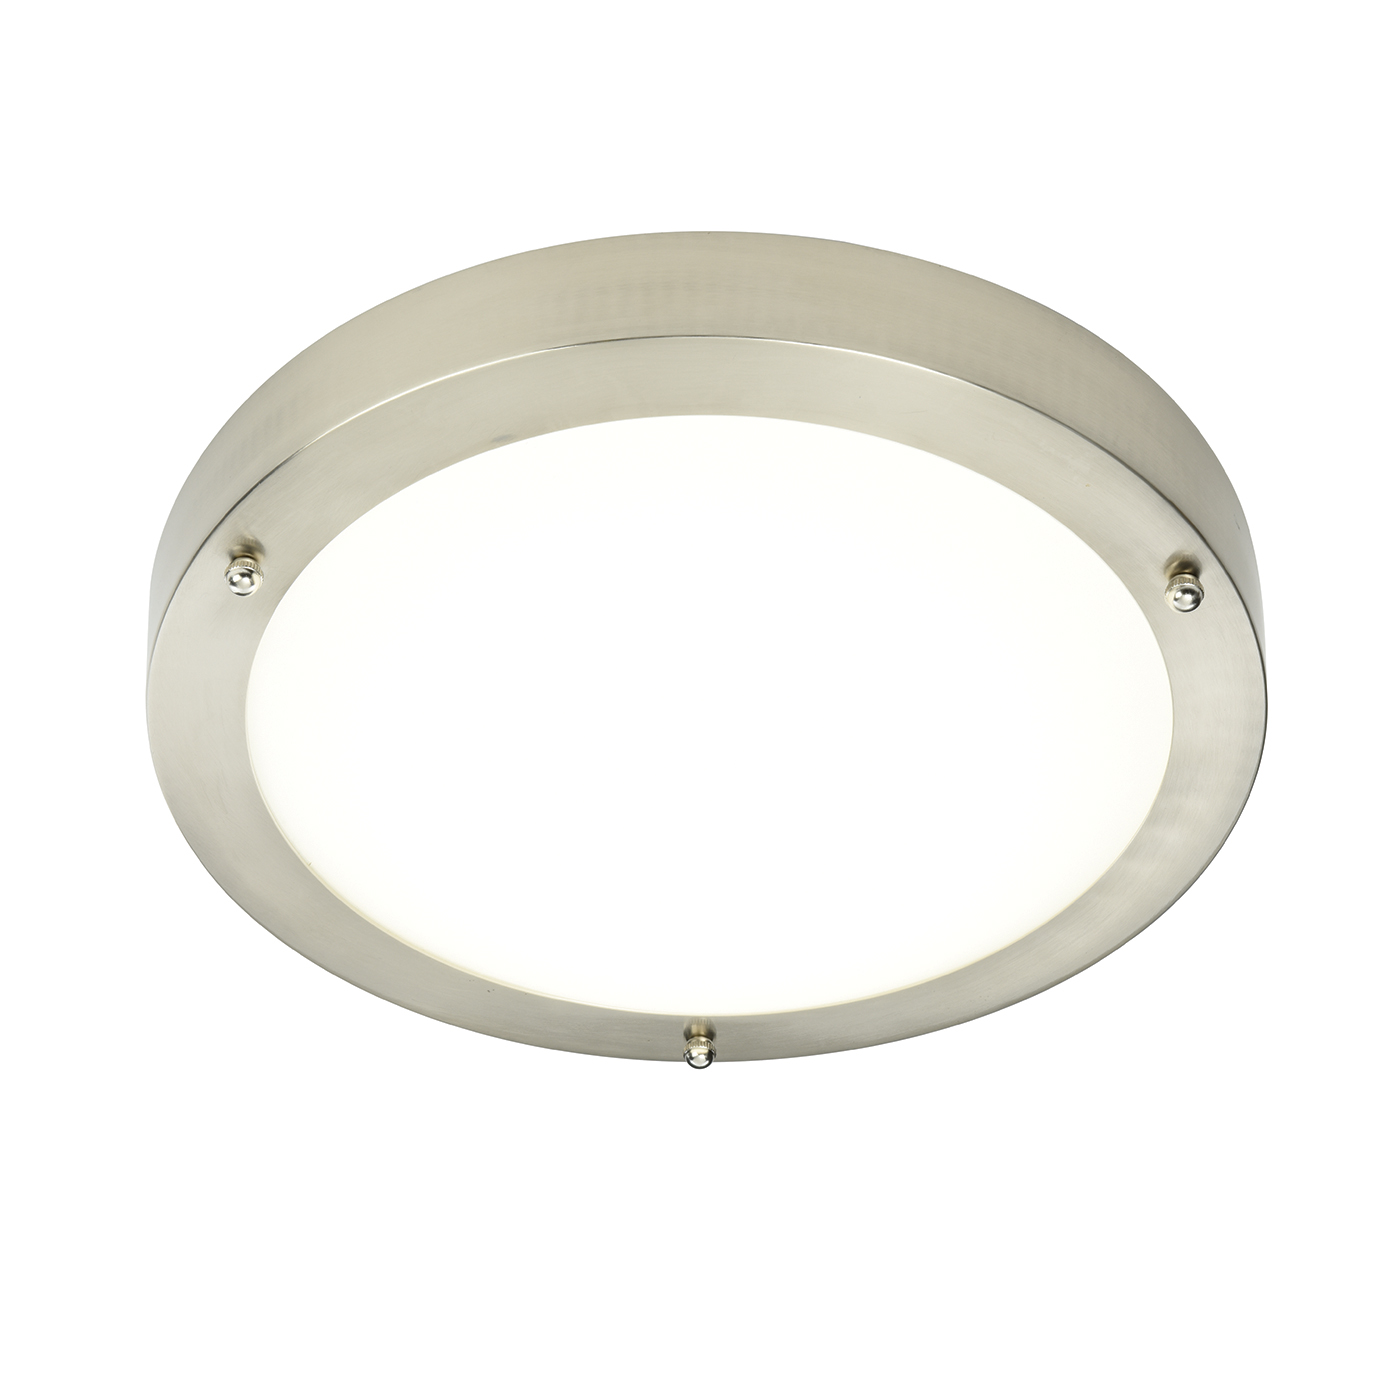 Endon Portico LED 300mm flush bathroom ceiling light IP44 9W Satin nickel glass Thumbnail 1